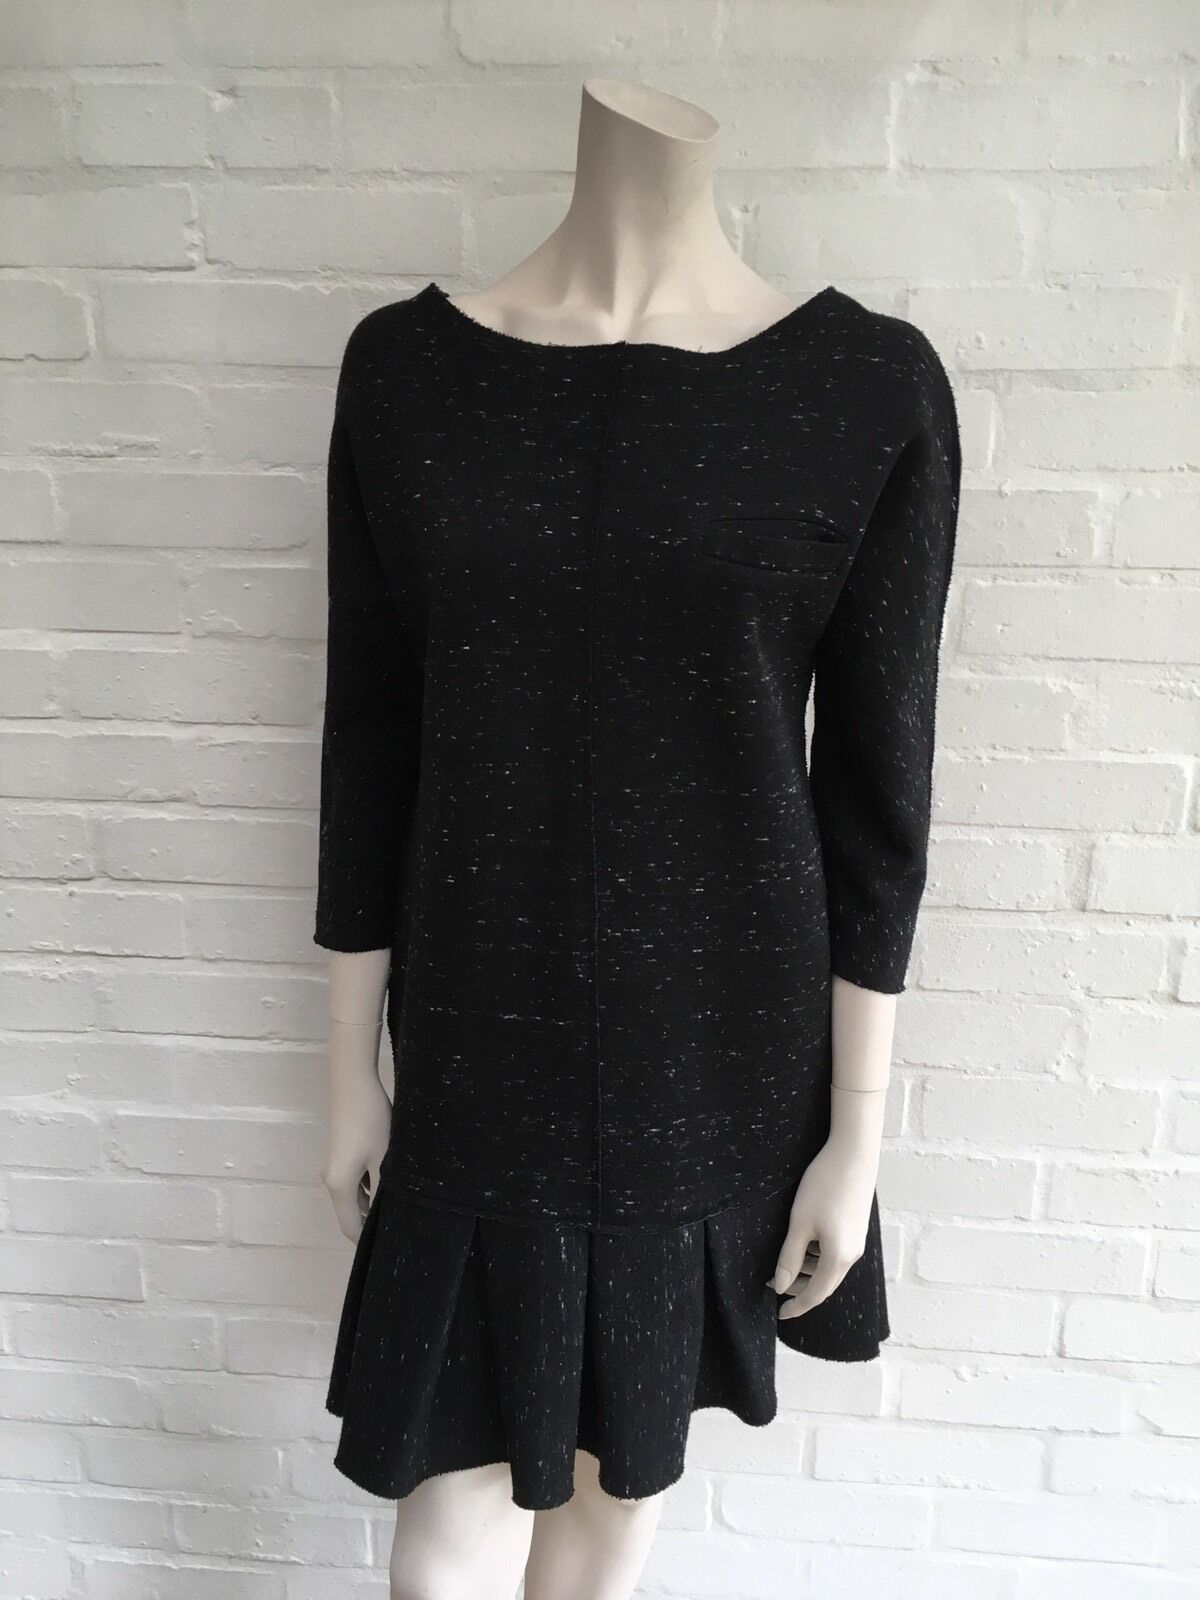 SEA NEW YORK CHARCOAL FLARED SHIFT DRESS SIZE US 4 S SMALL